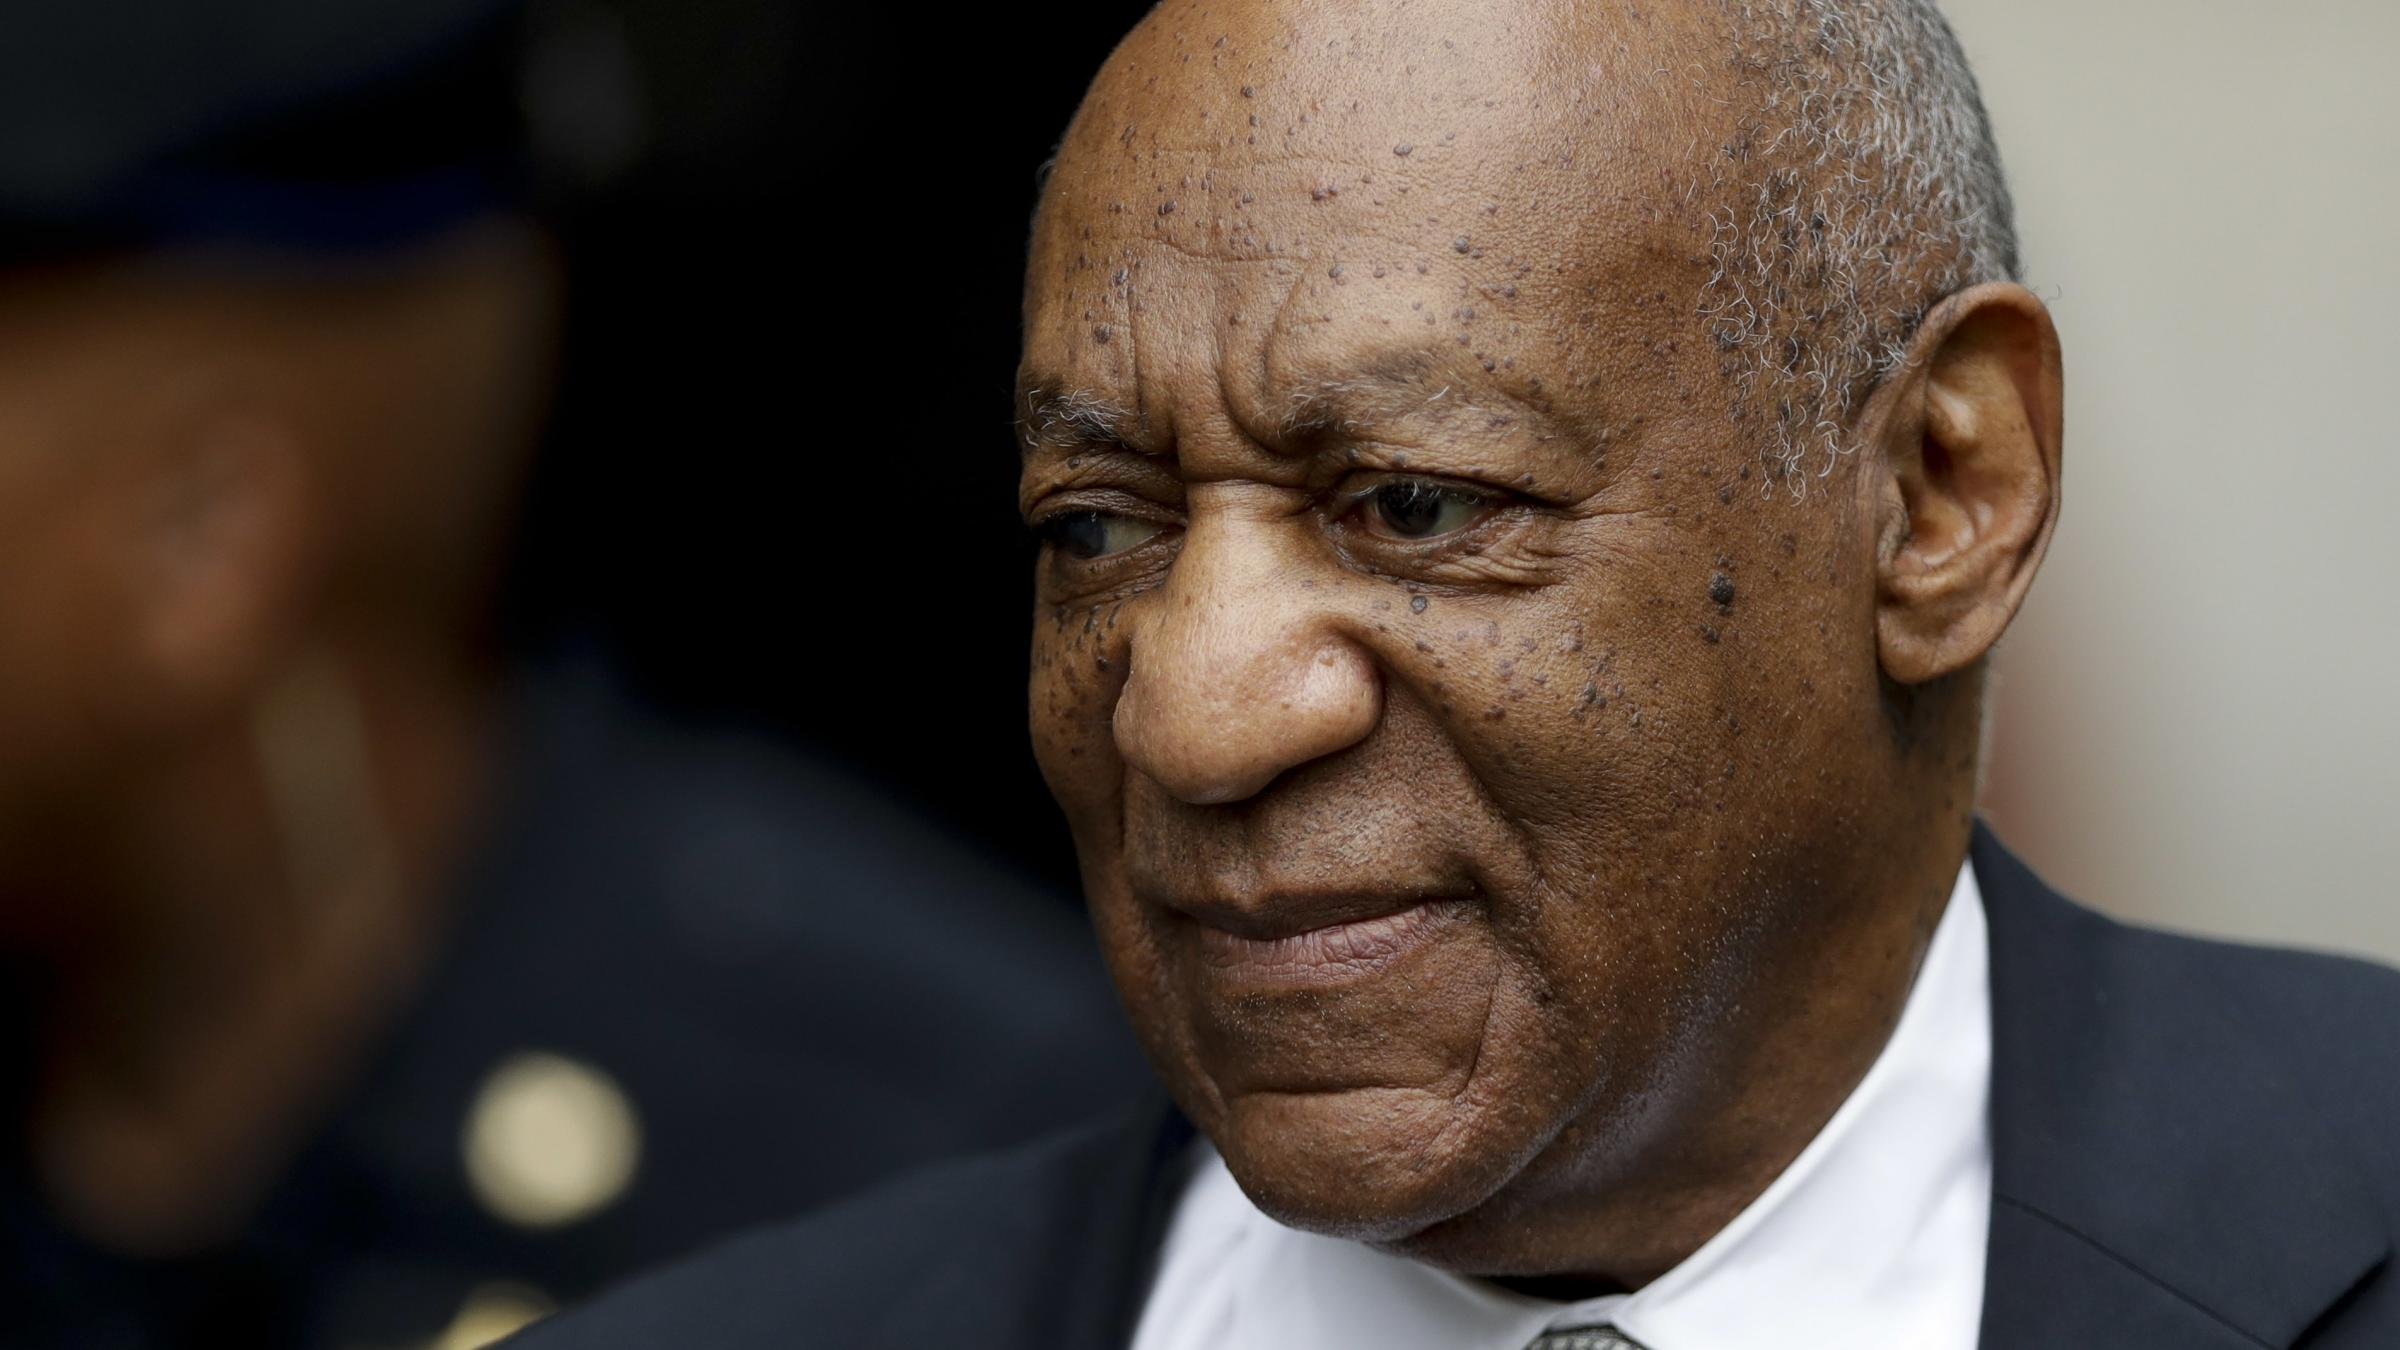 Celebrity reaction to the mistrial in Bill Cosby's trial